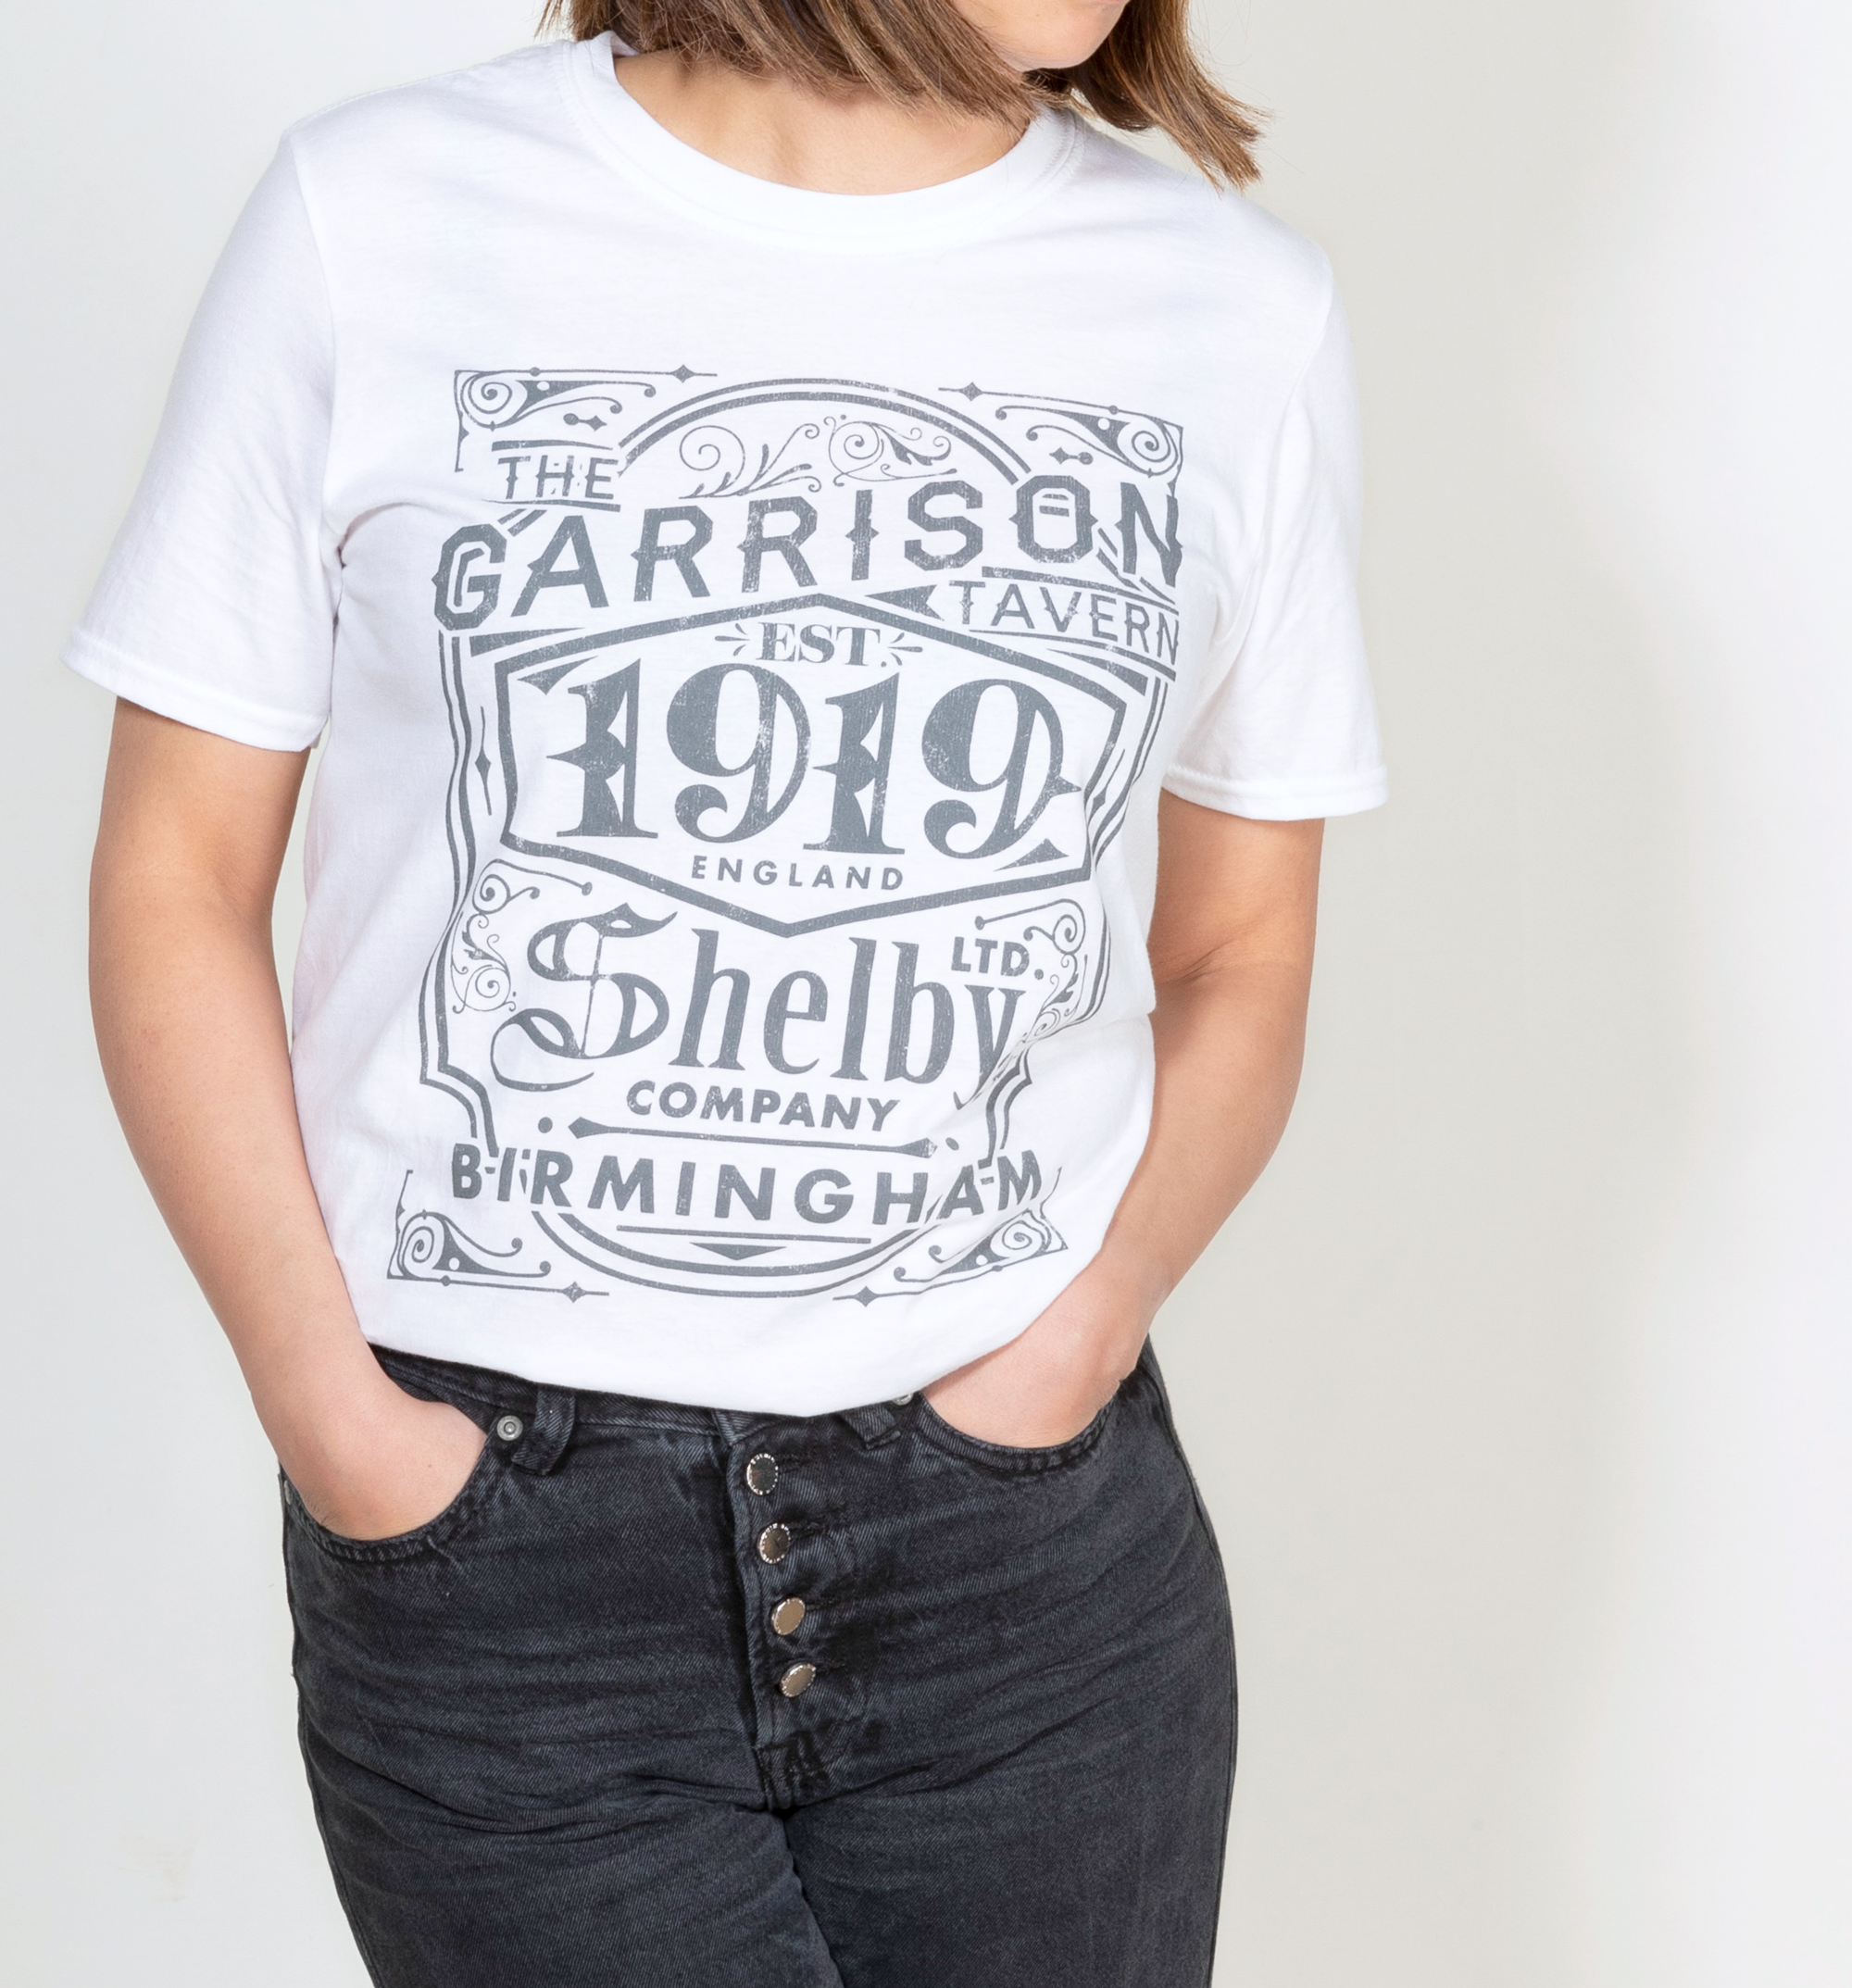 b888b598679c Women's White Peaky Blinders Garrison Pub Oversized T-Shirt - Made from  100% pre-shrunk, ringspun cotton for added softness - Soft feel, lightweight  tee ...